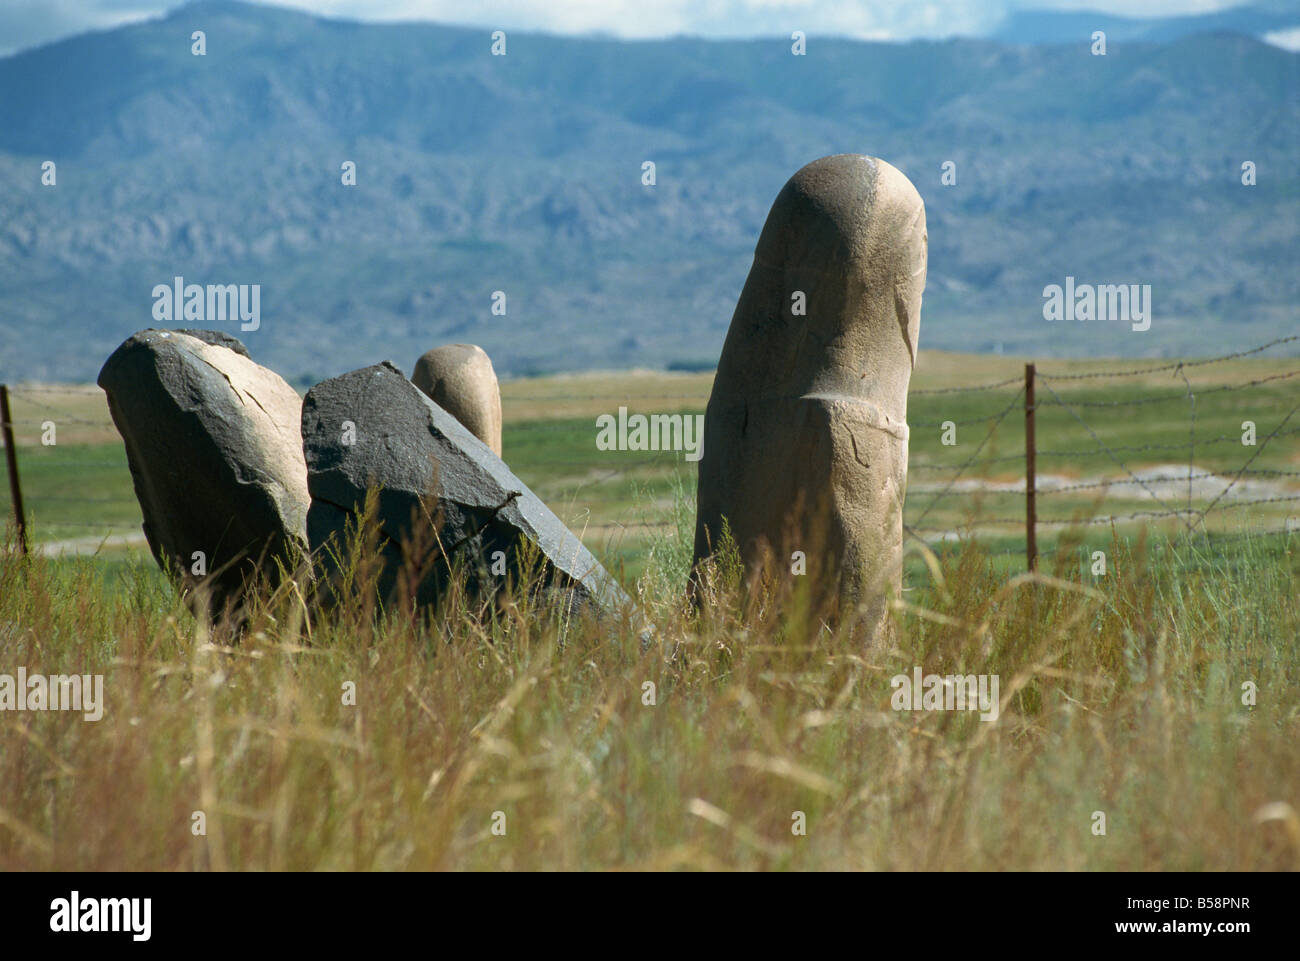 Turkic tombs dating from between the 2nd century BC and the 7th century AD, Kayinarl, Altay Mountains, northeast - Stock Image